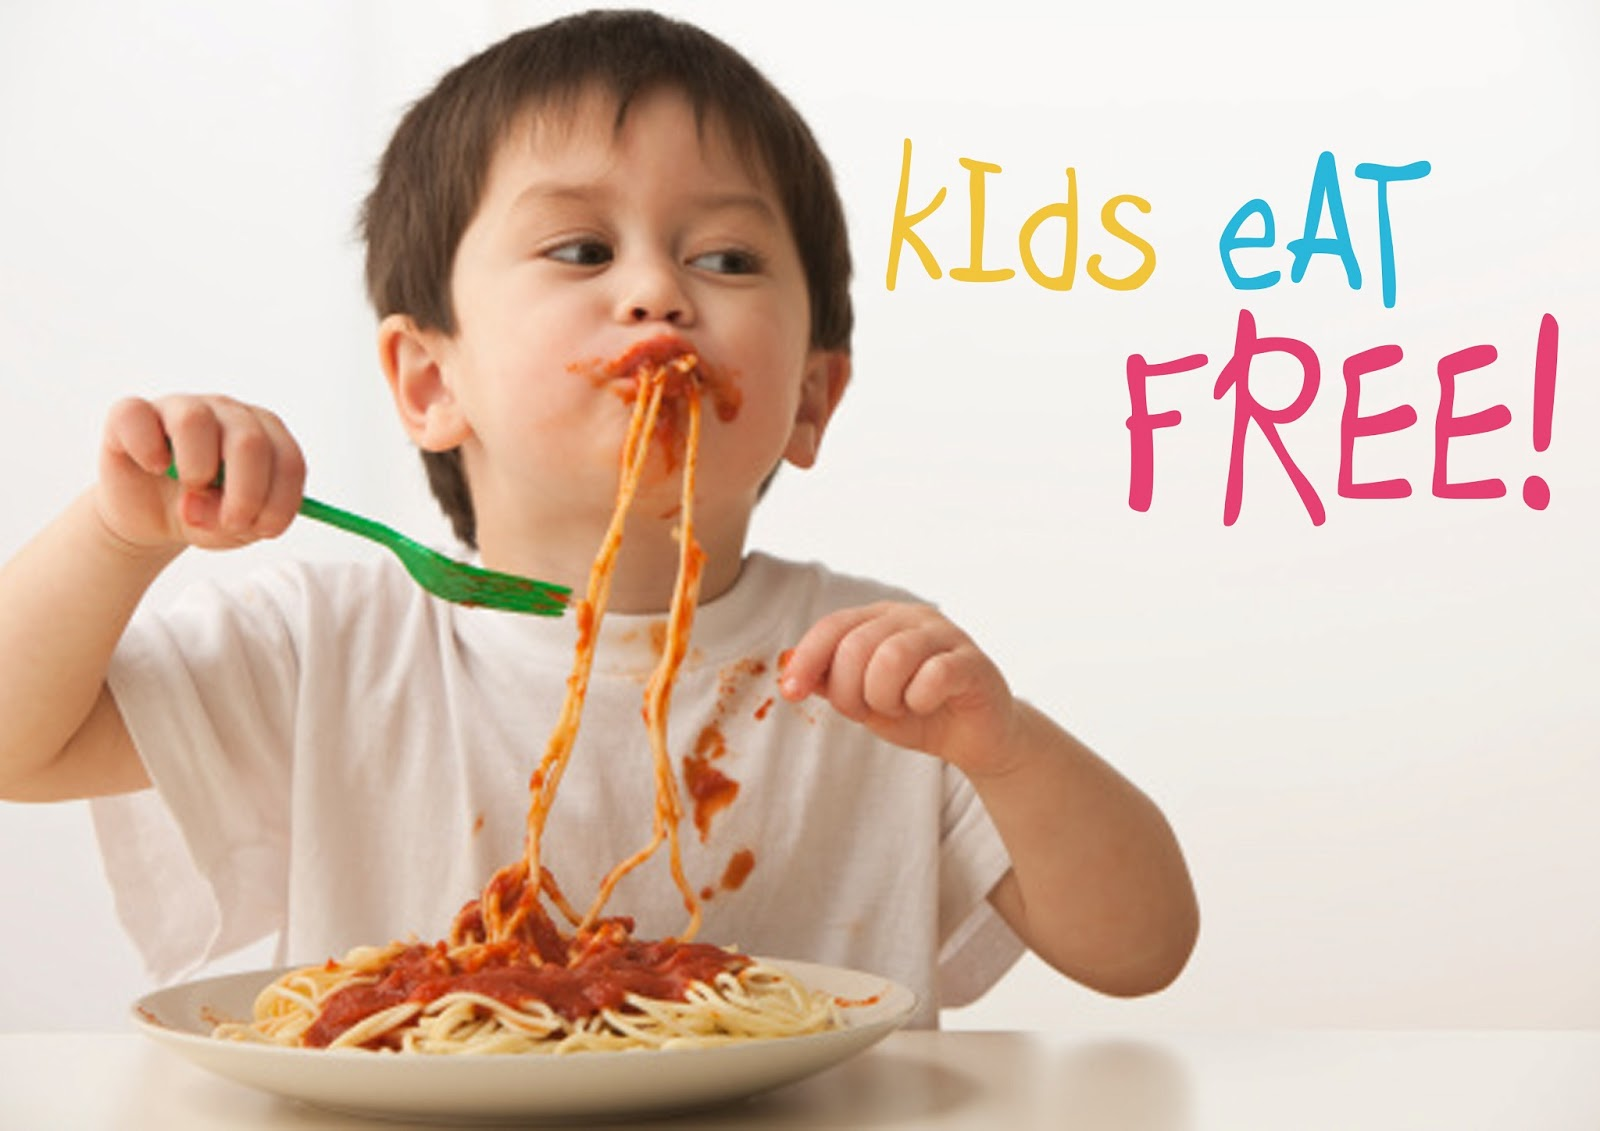 When All Kids Eat For Free >> Kids Eat Free At Marriott A Taste Of Goodness